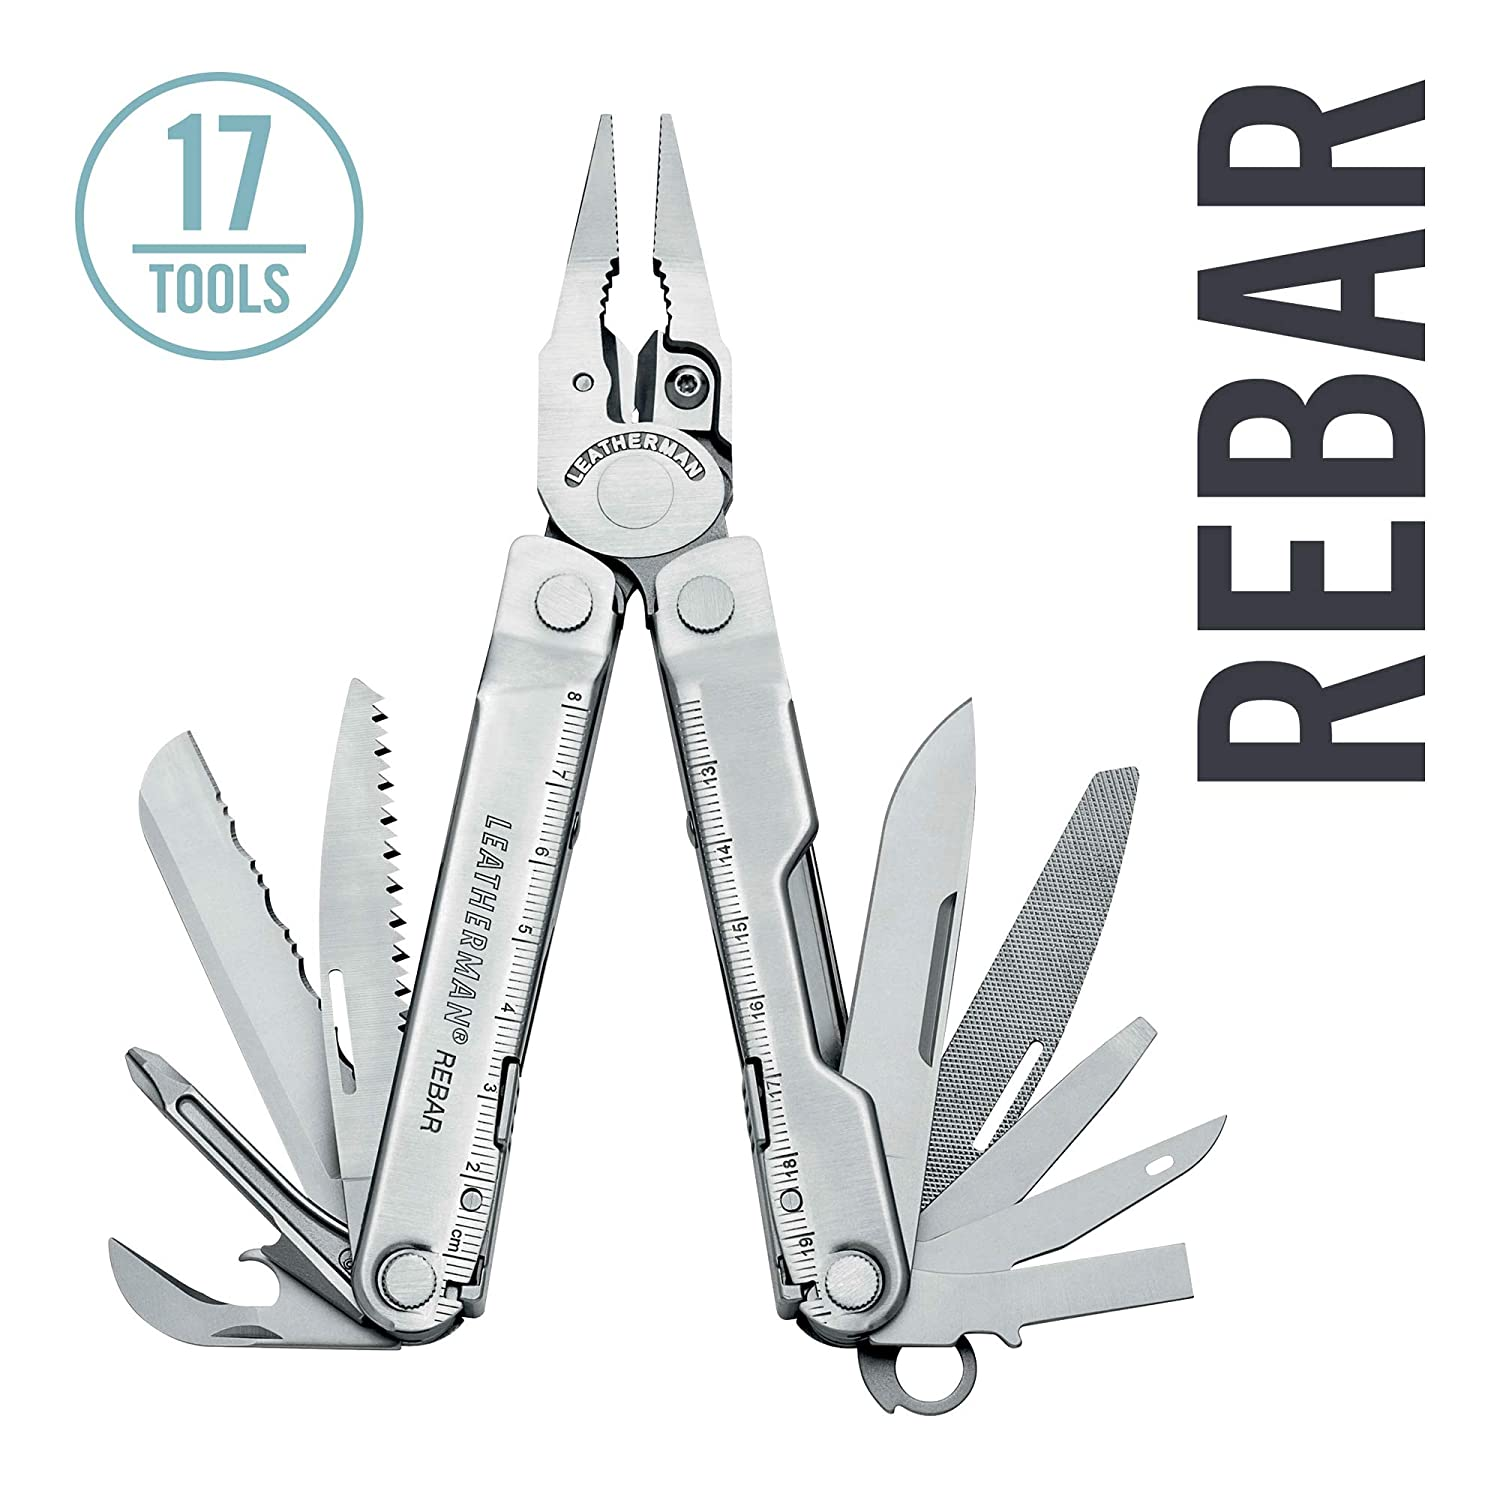 LEATHERMAN – Rebar Multitool with Premium Replaceable Wire Cutters and Saw, Stainless Steel with Nylon Sheath